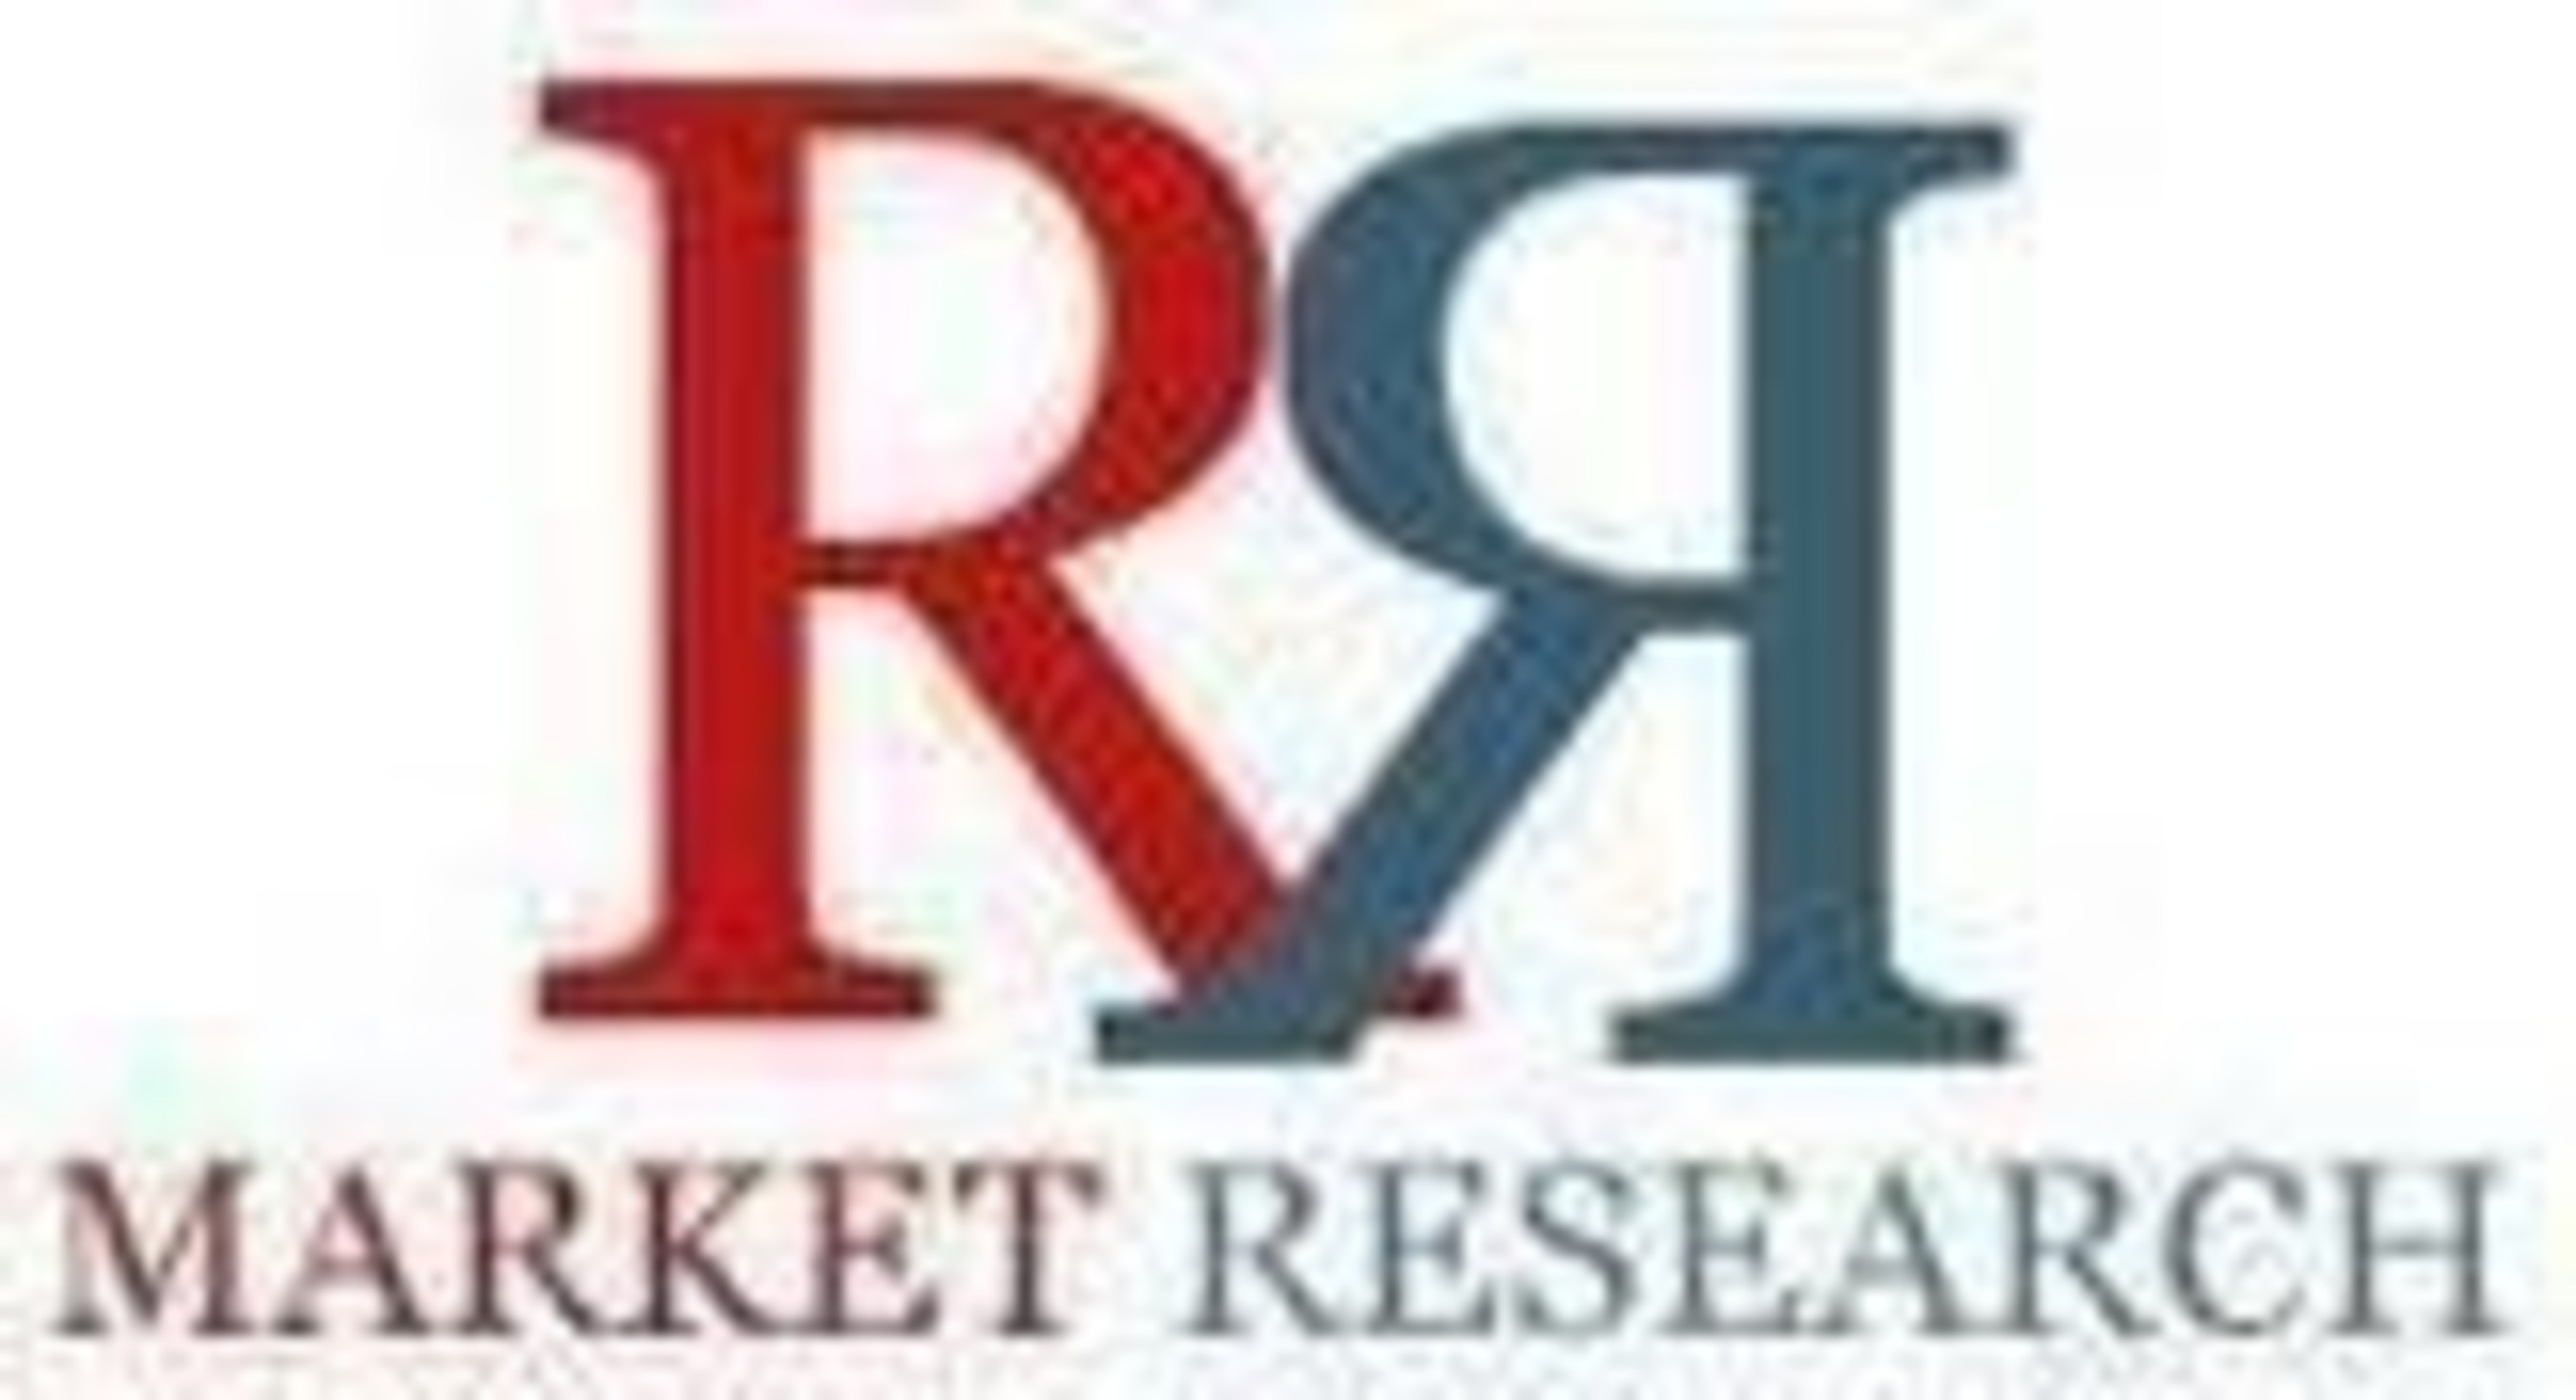 Hi-Fi (High Fidelity) System Market Growing at 6.4% CAGR to 2022